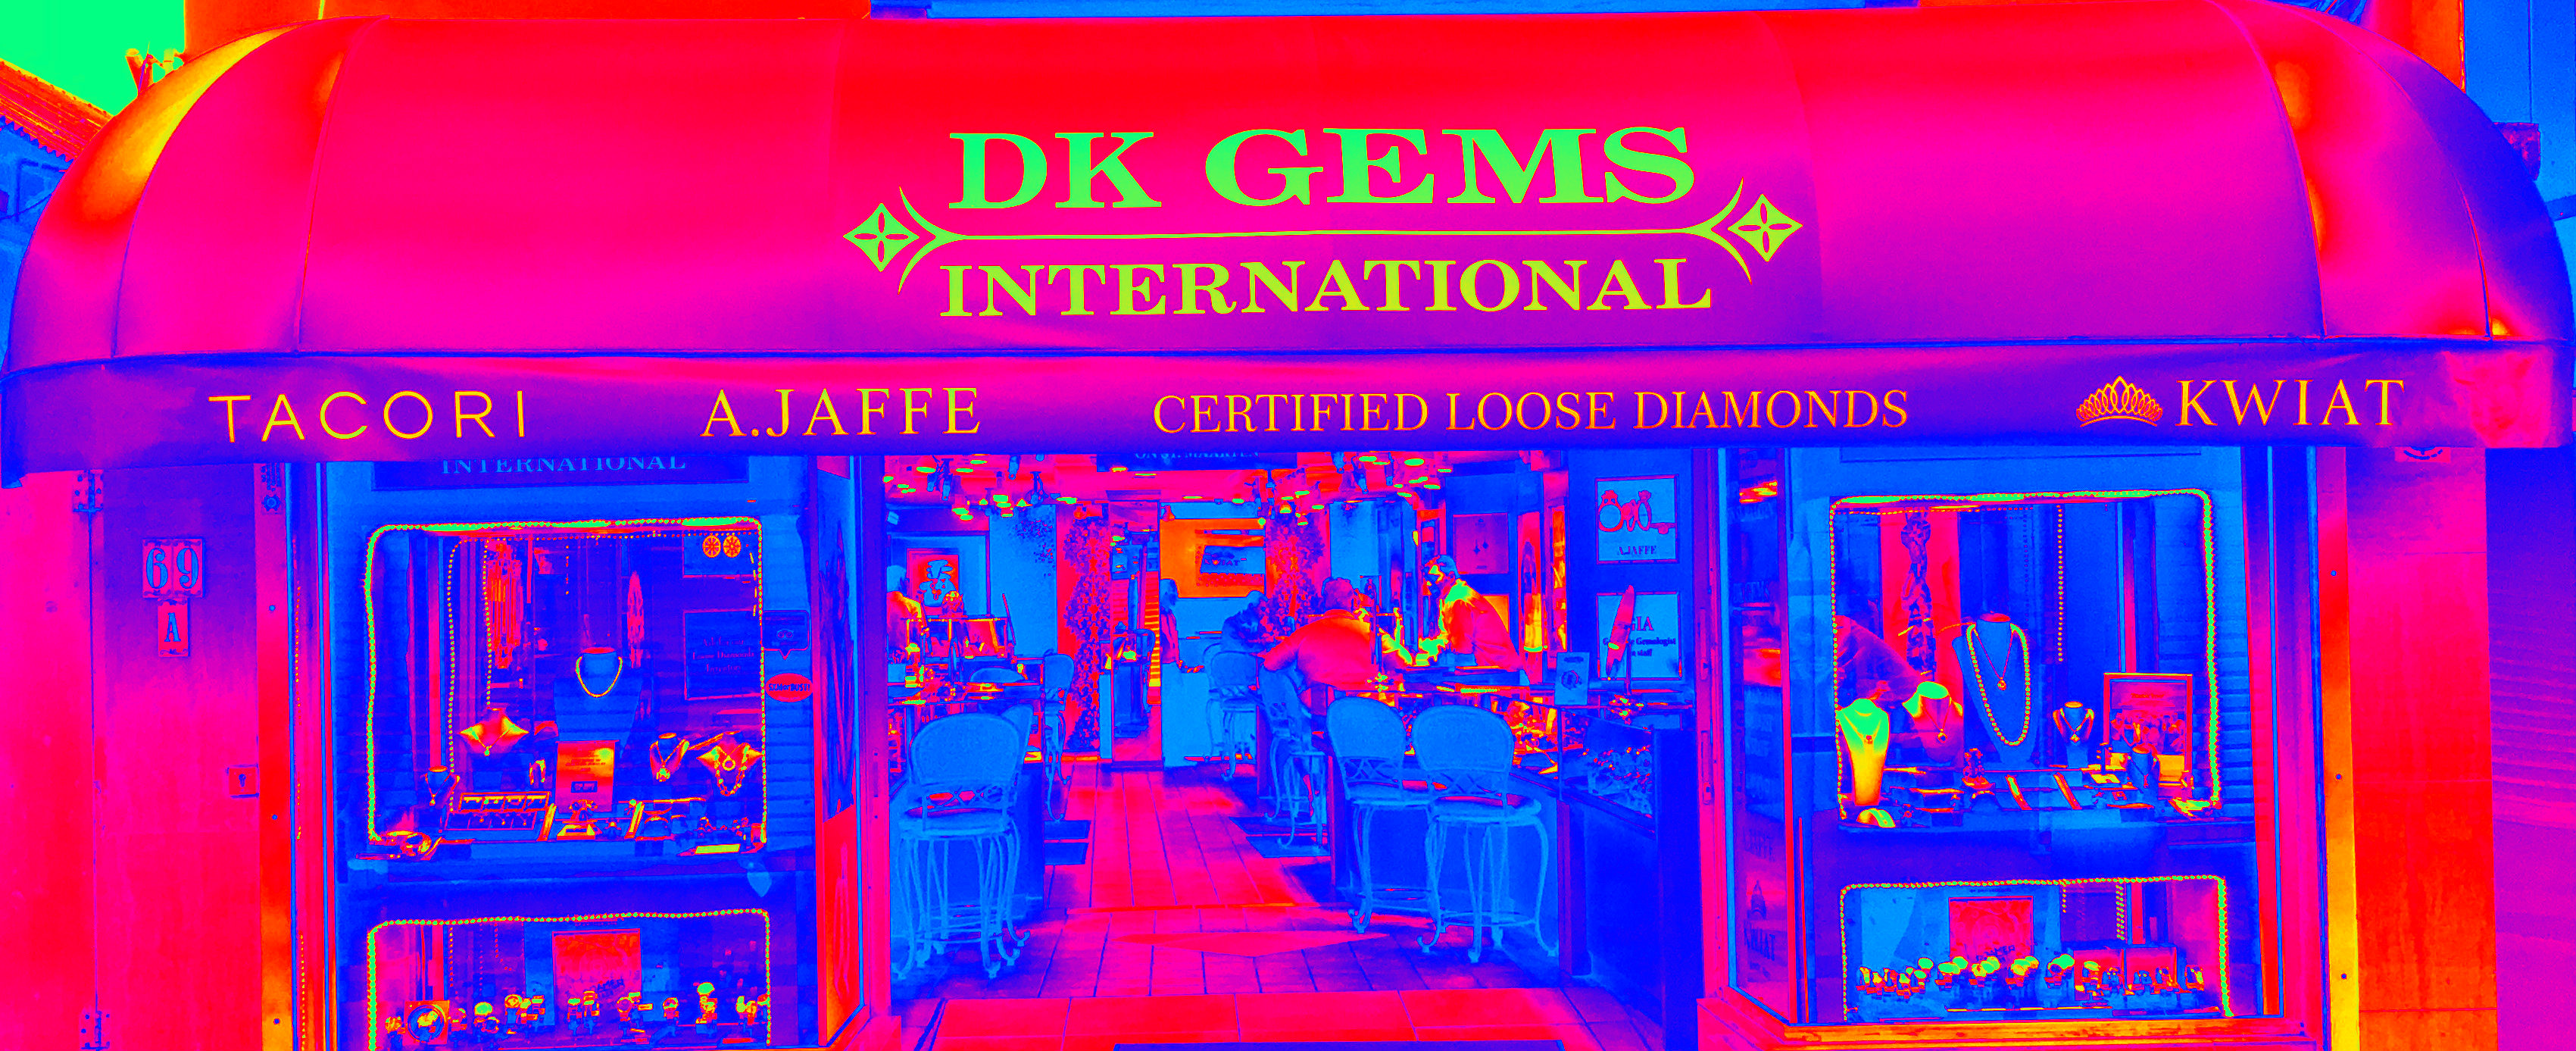 st maarten jewelry DK Gems International VOTED BEST St Maarten Jewelry stores 1